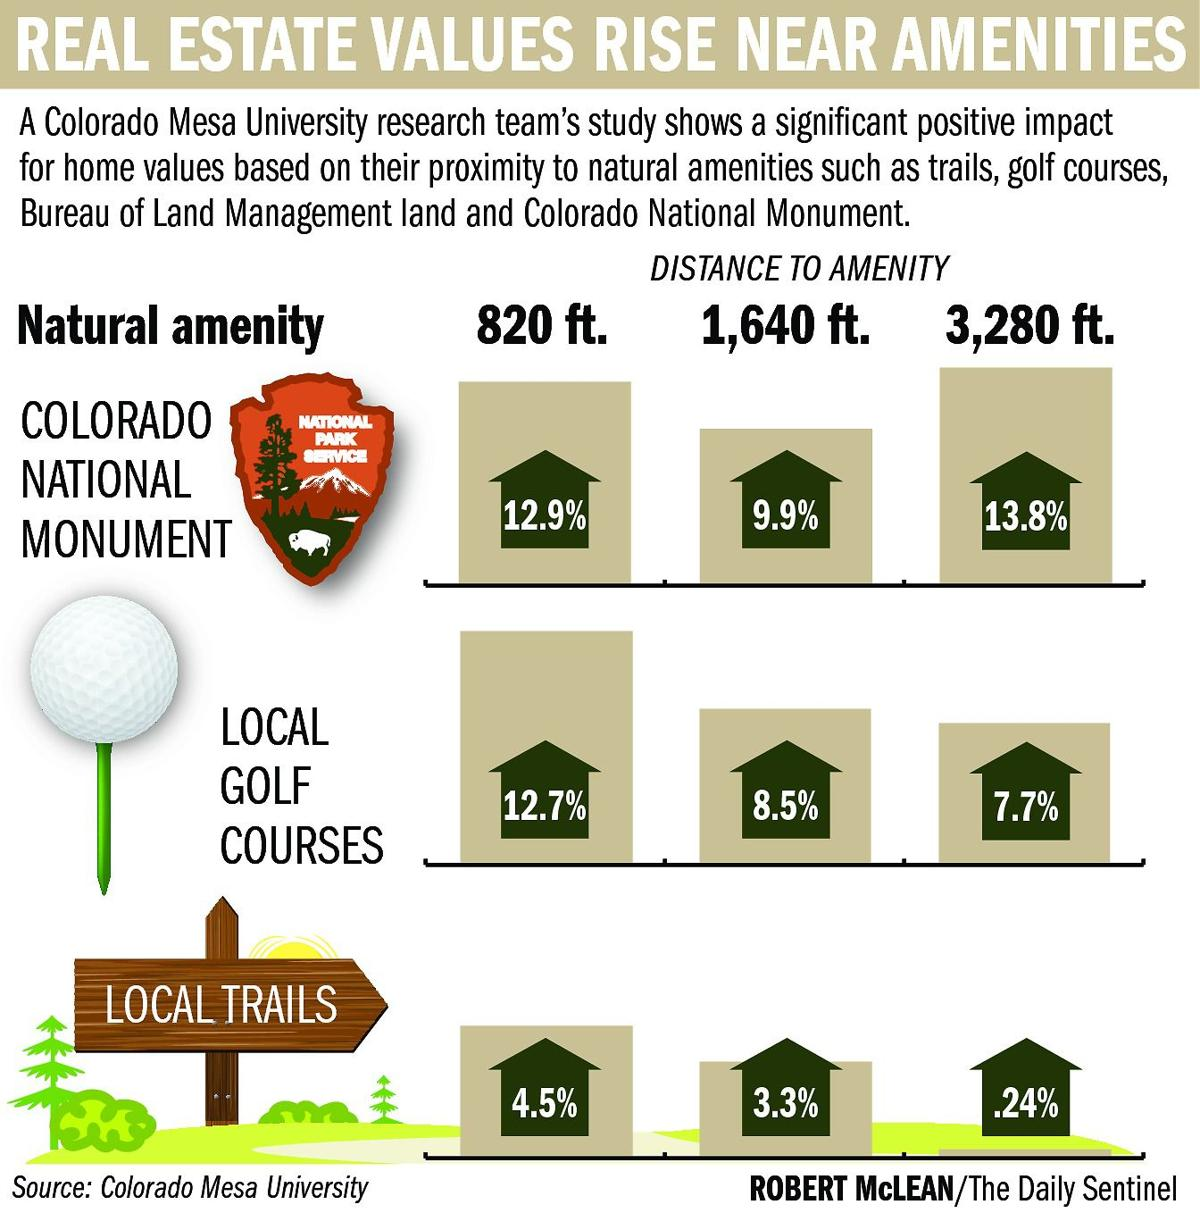 Study shows location importance to real estate